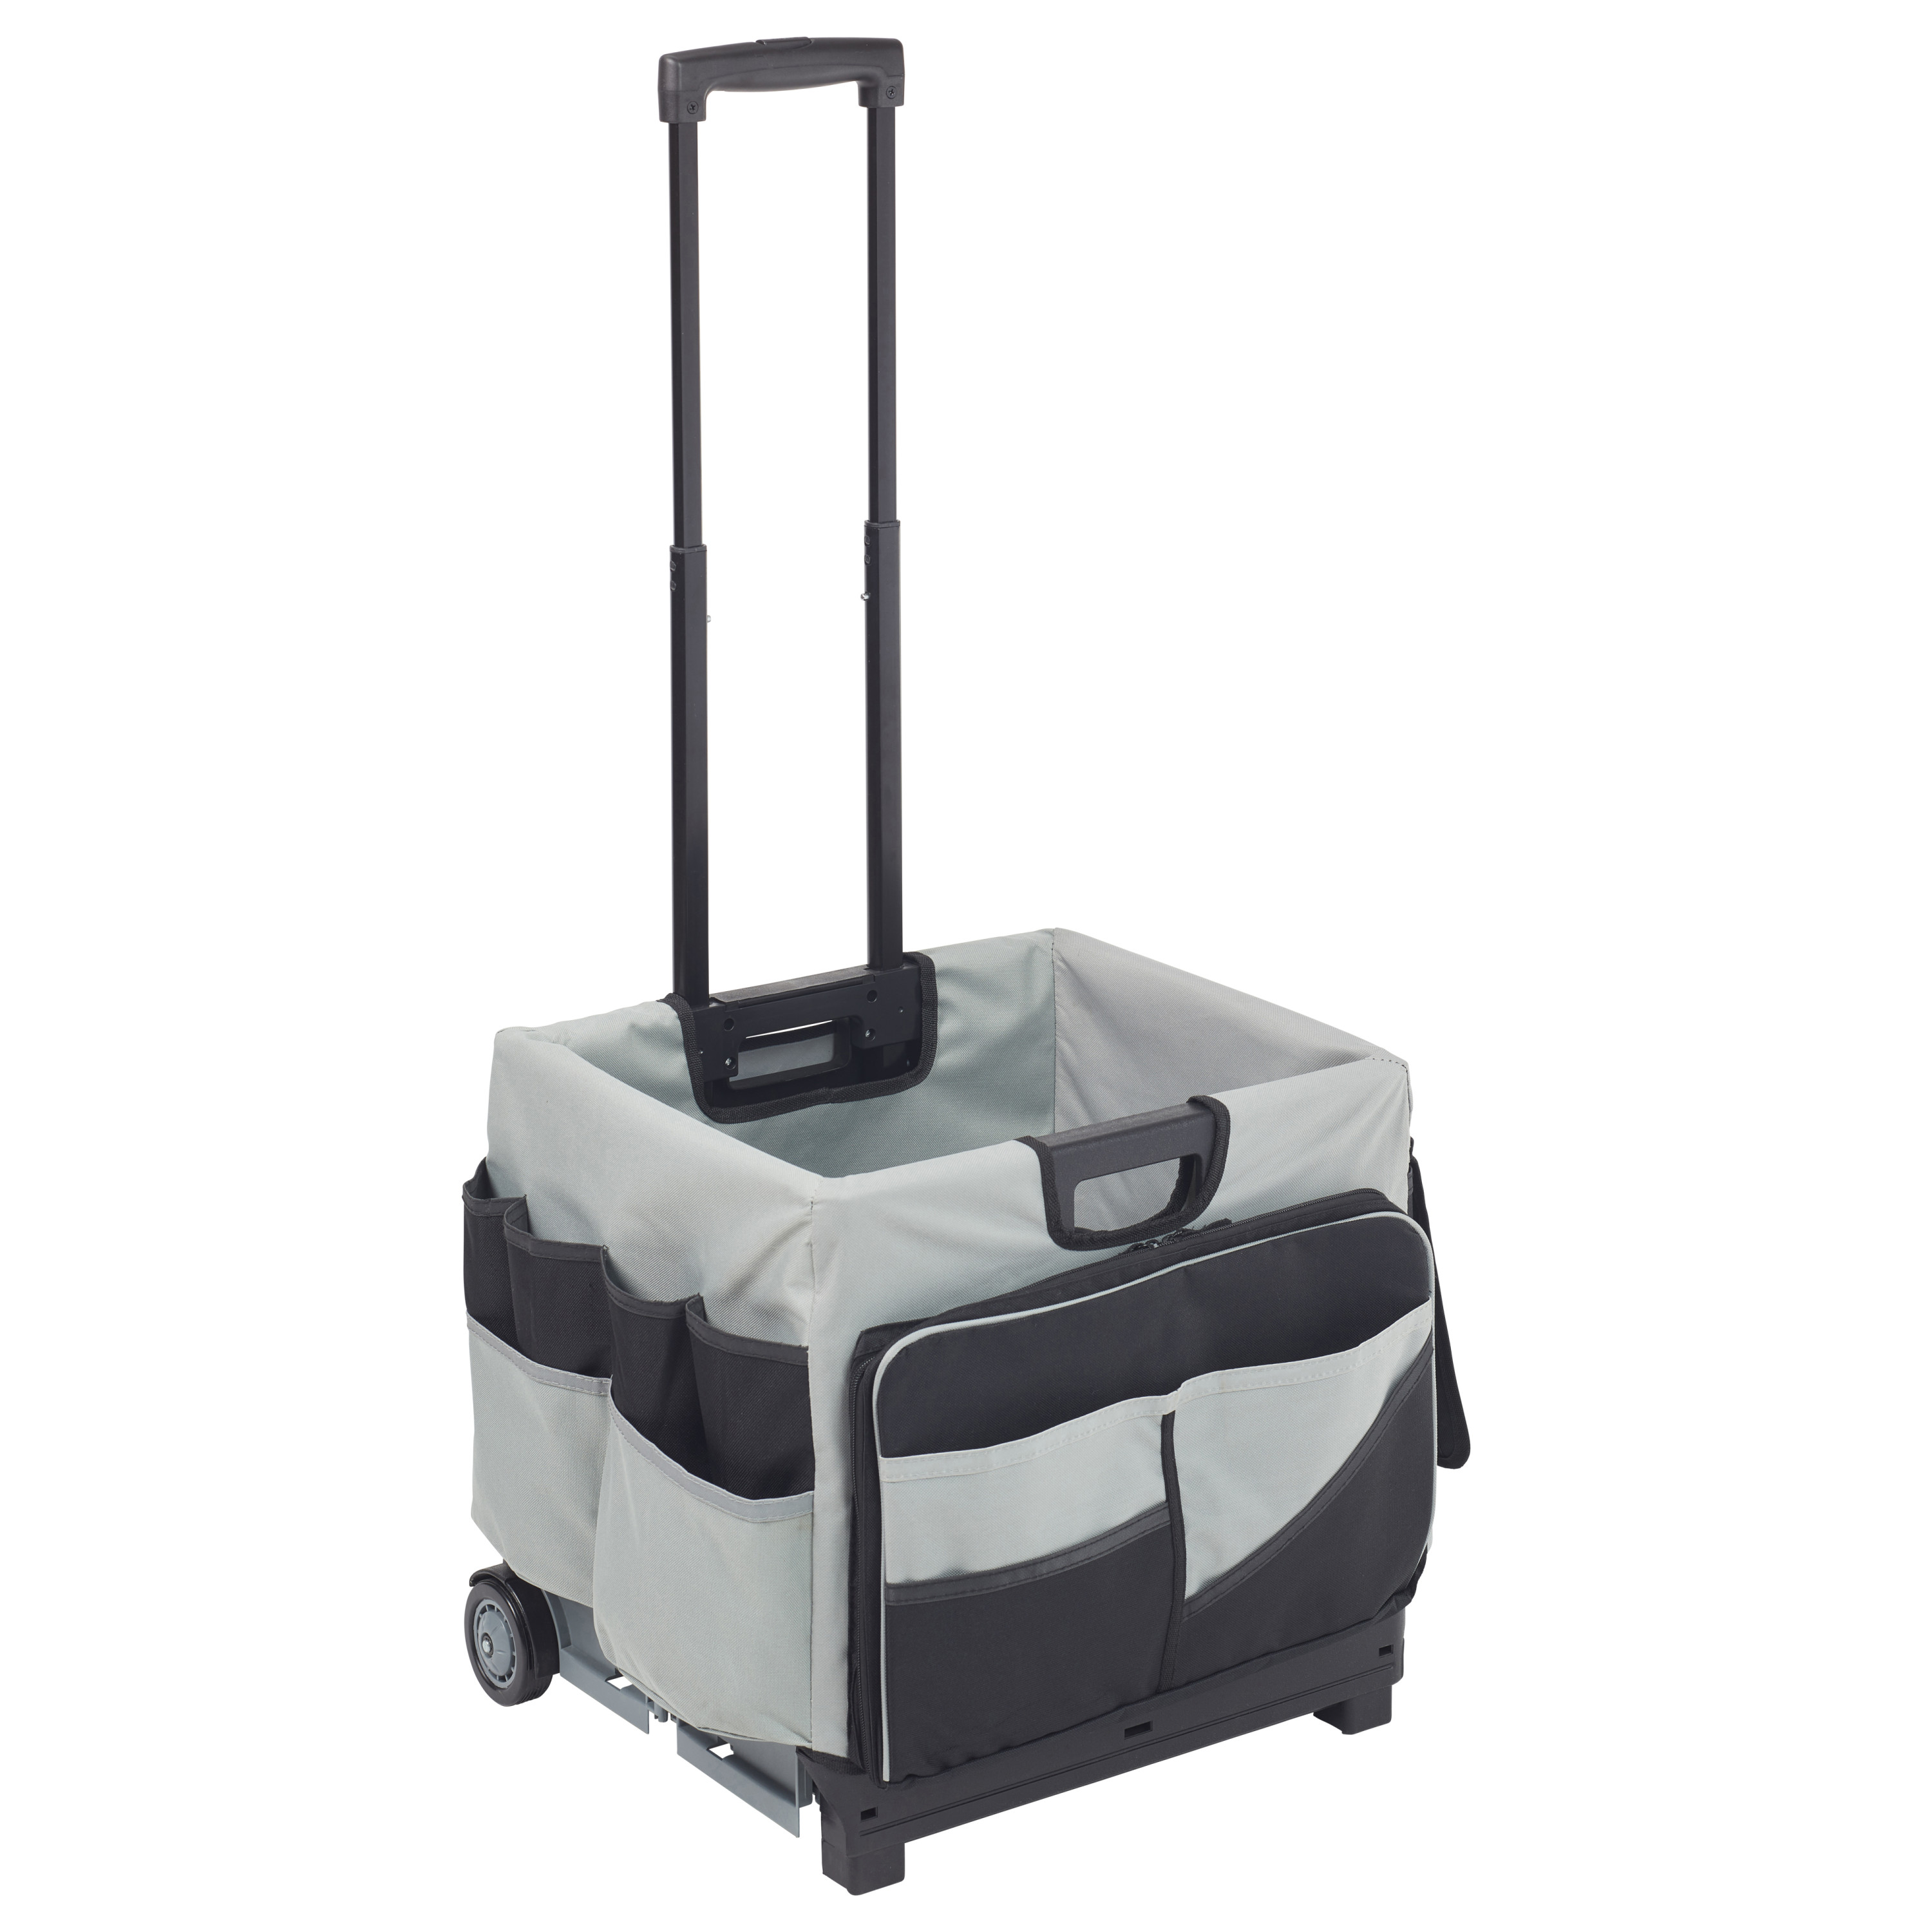 Universal Rolling Cart and Organizer Bag Black by ECR4Kids